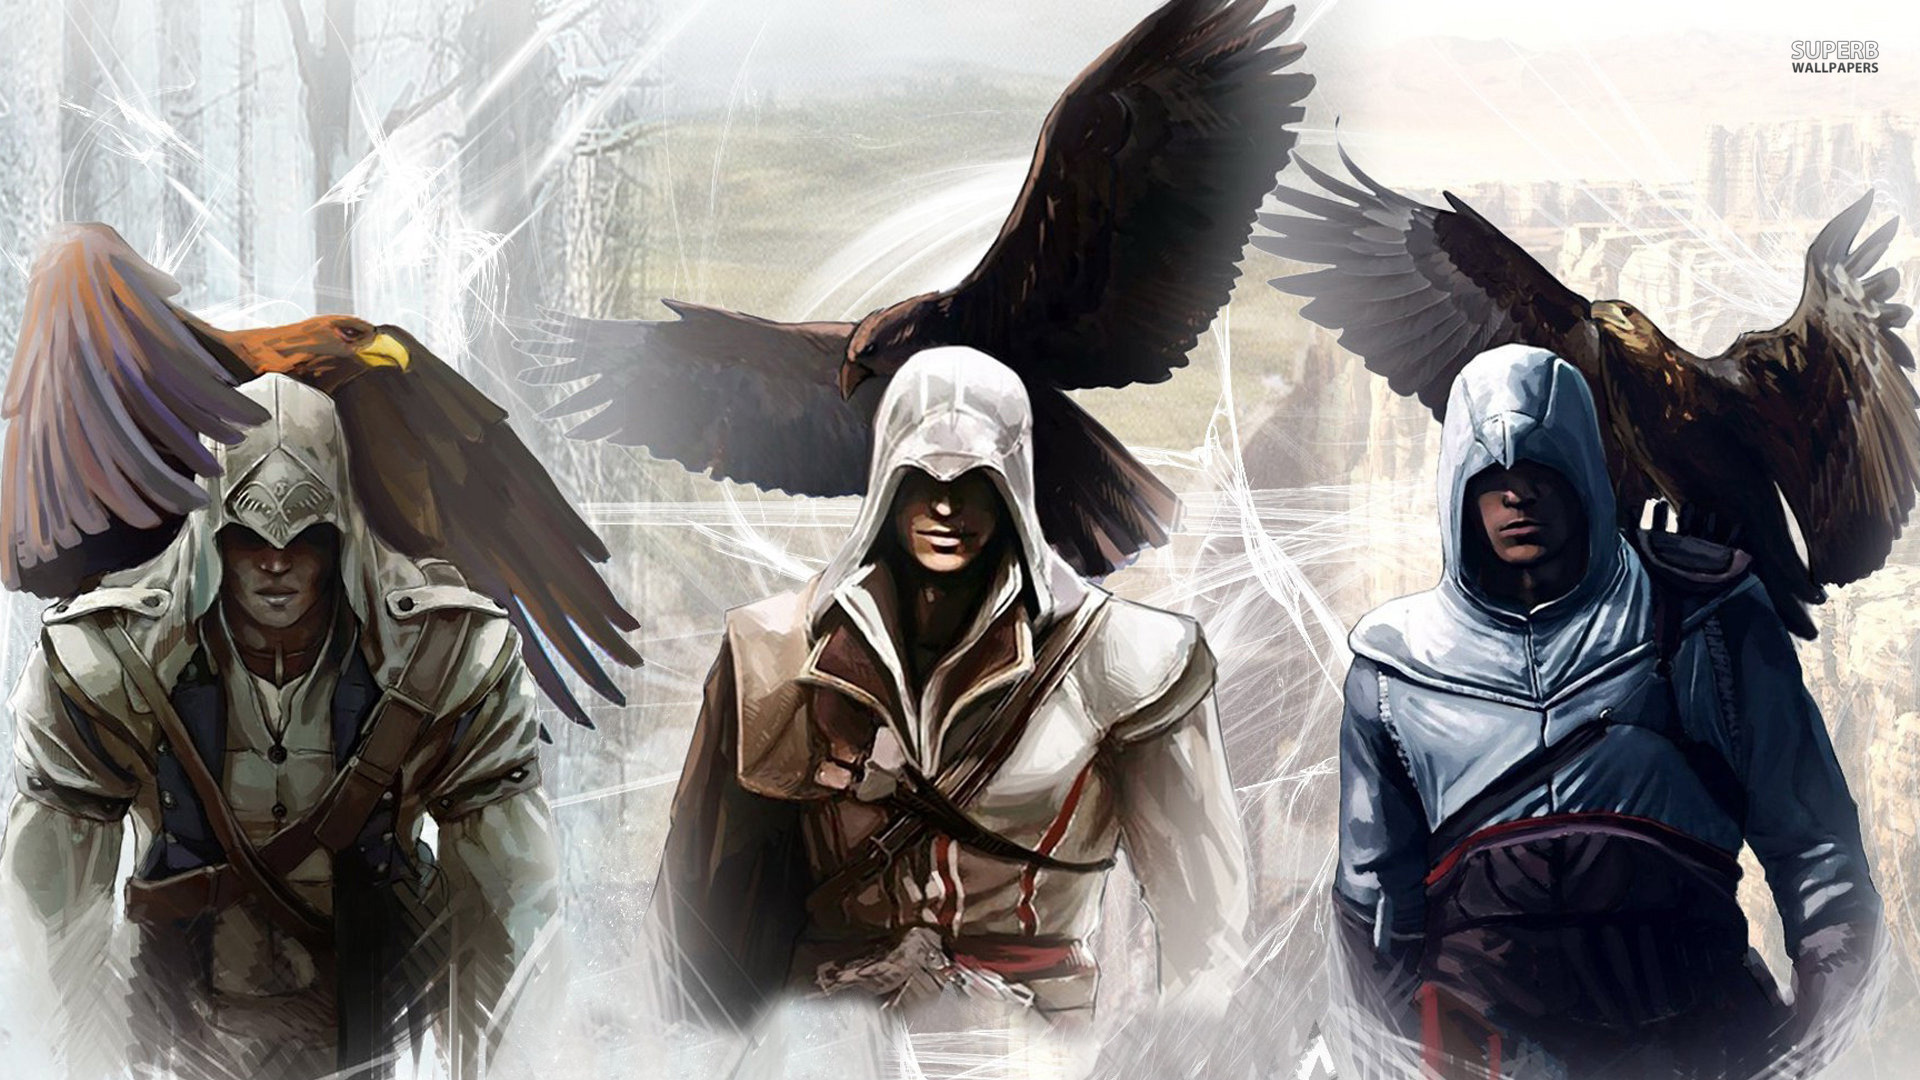 Assassins Creed Brotherhood Wallpaper Wallpaper